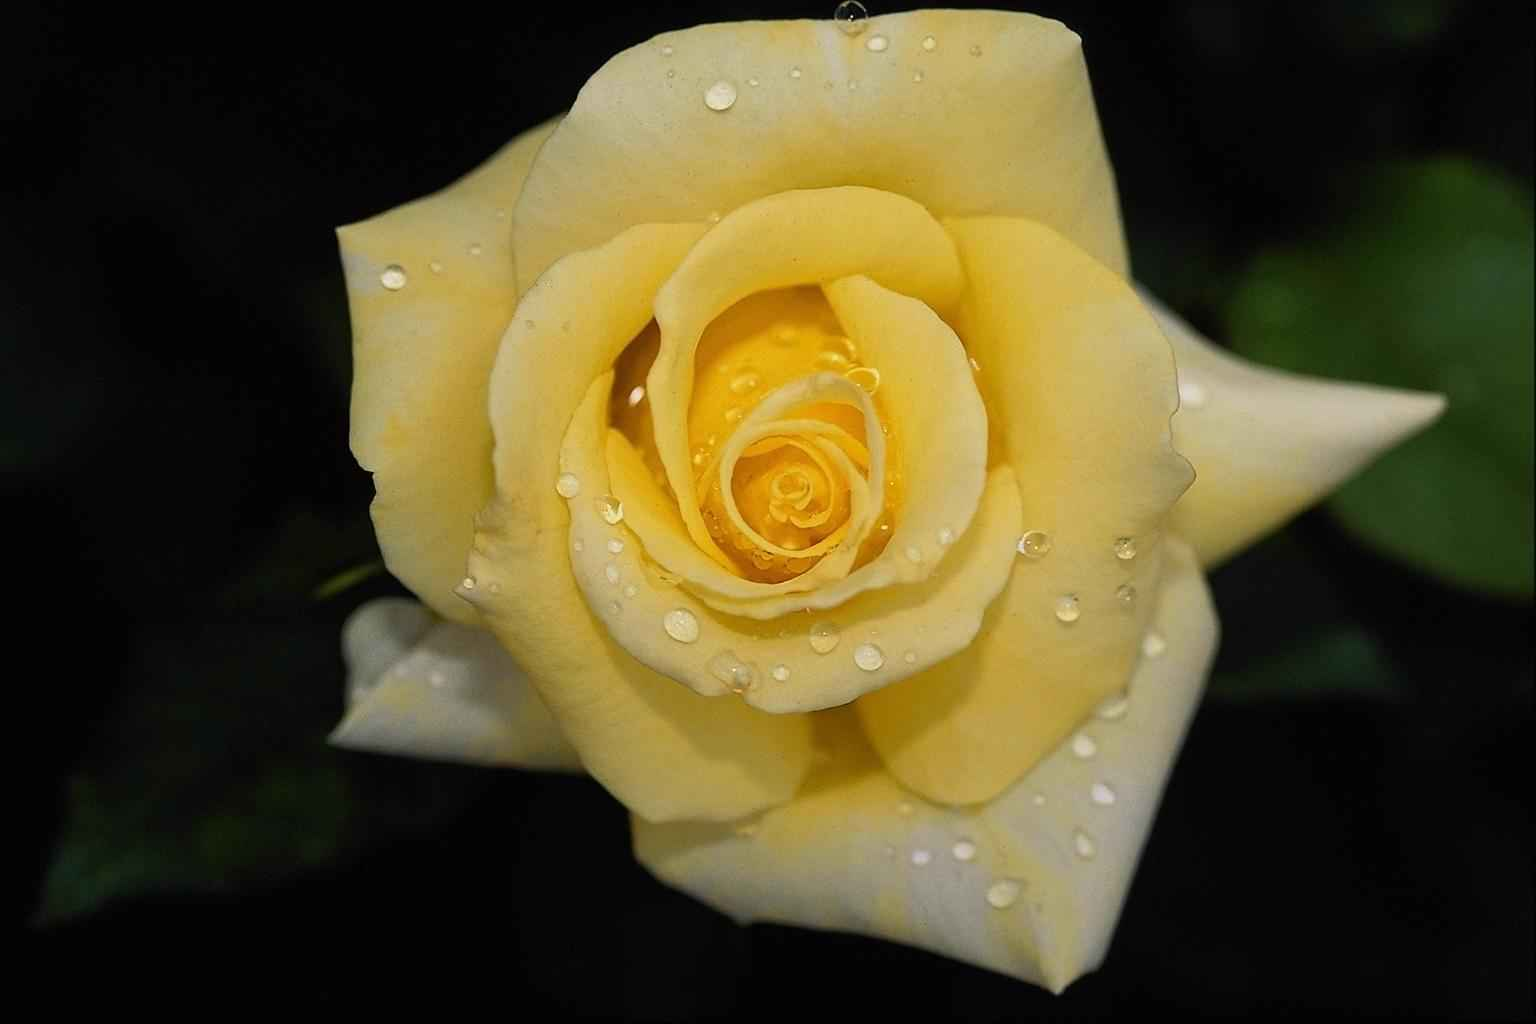 yellow roses with water drops - photo #4